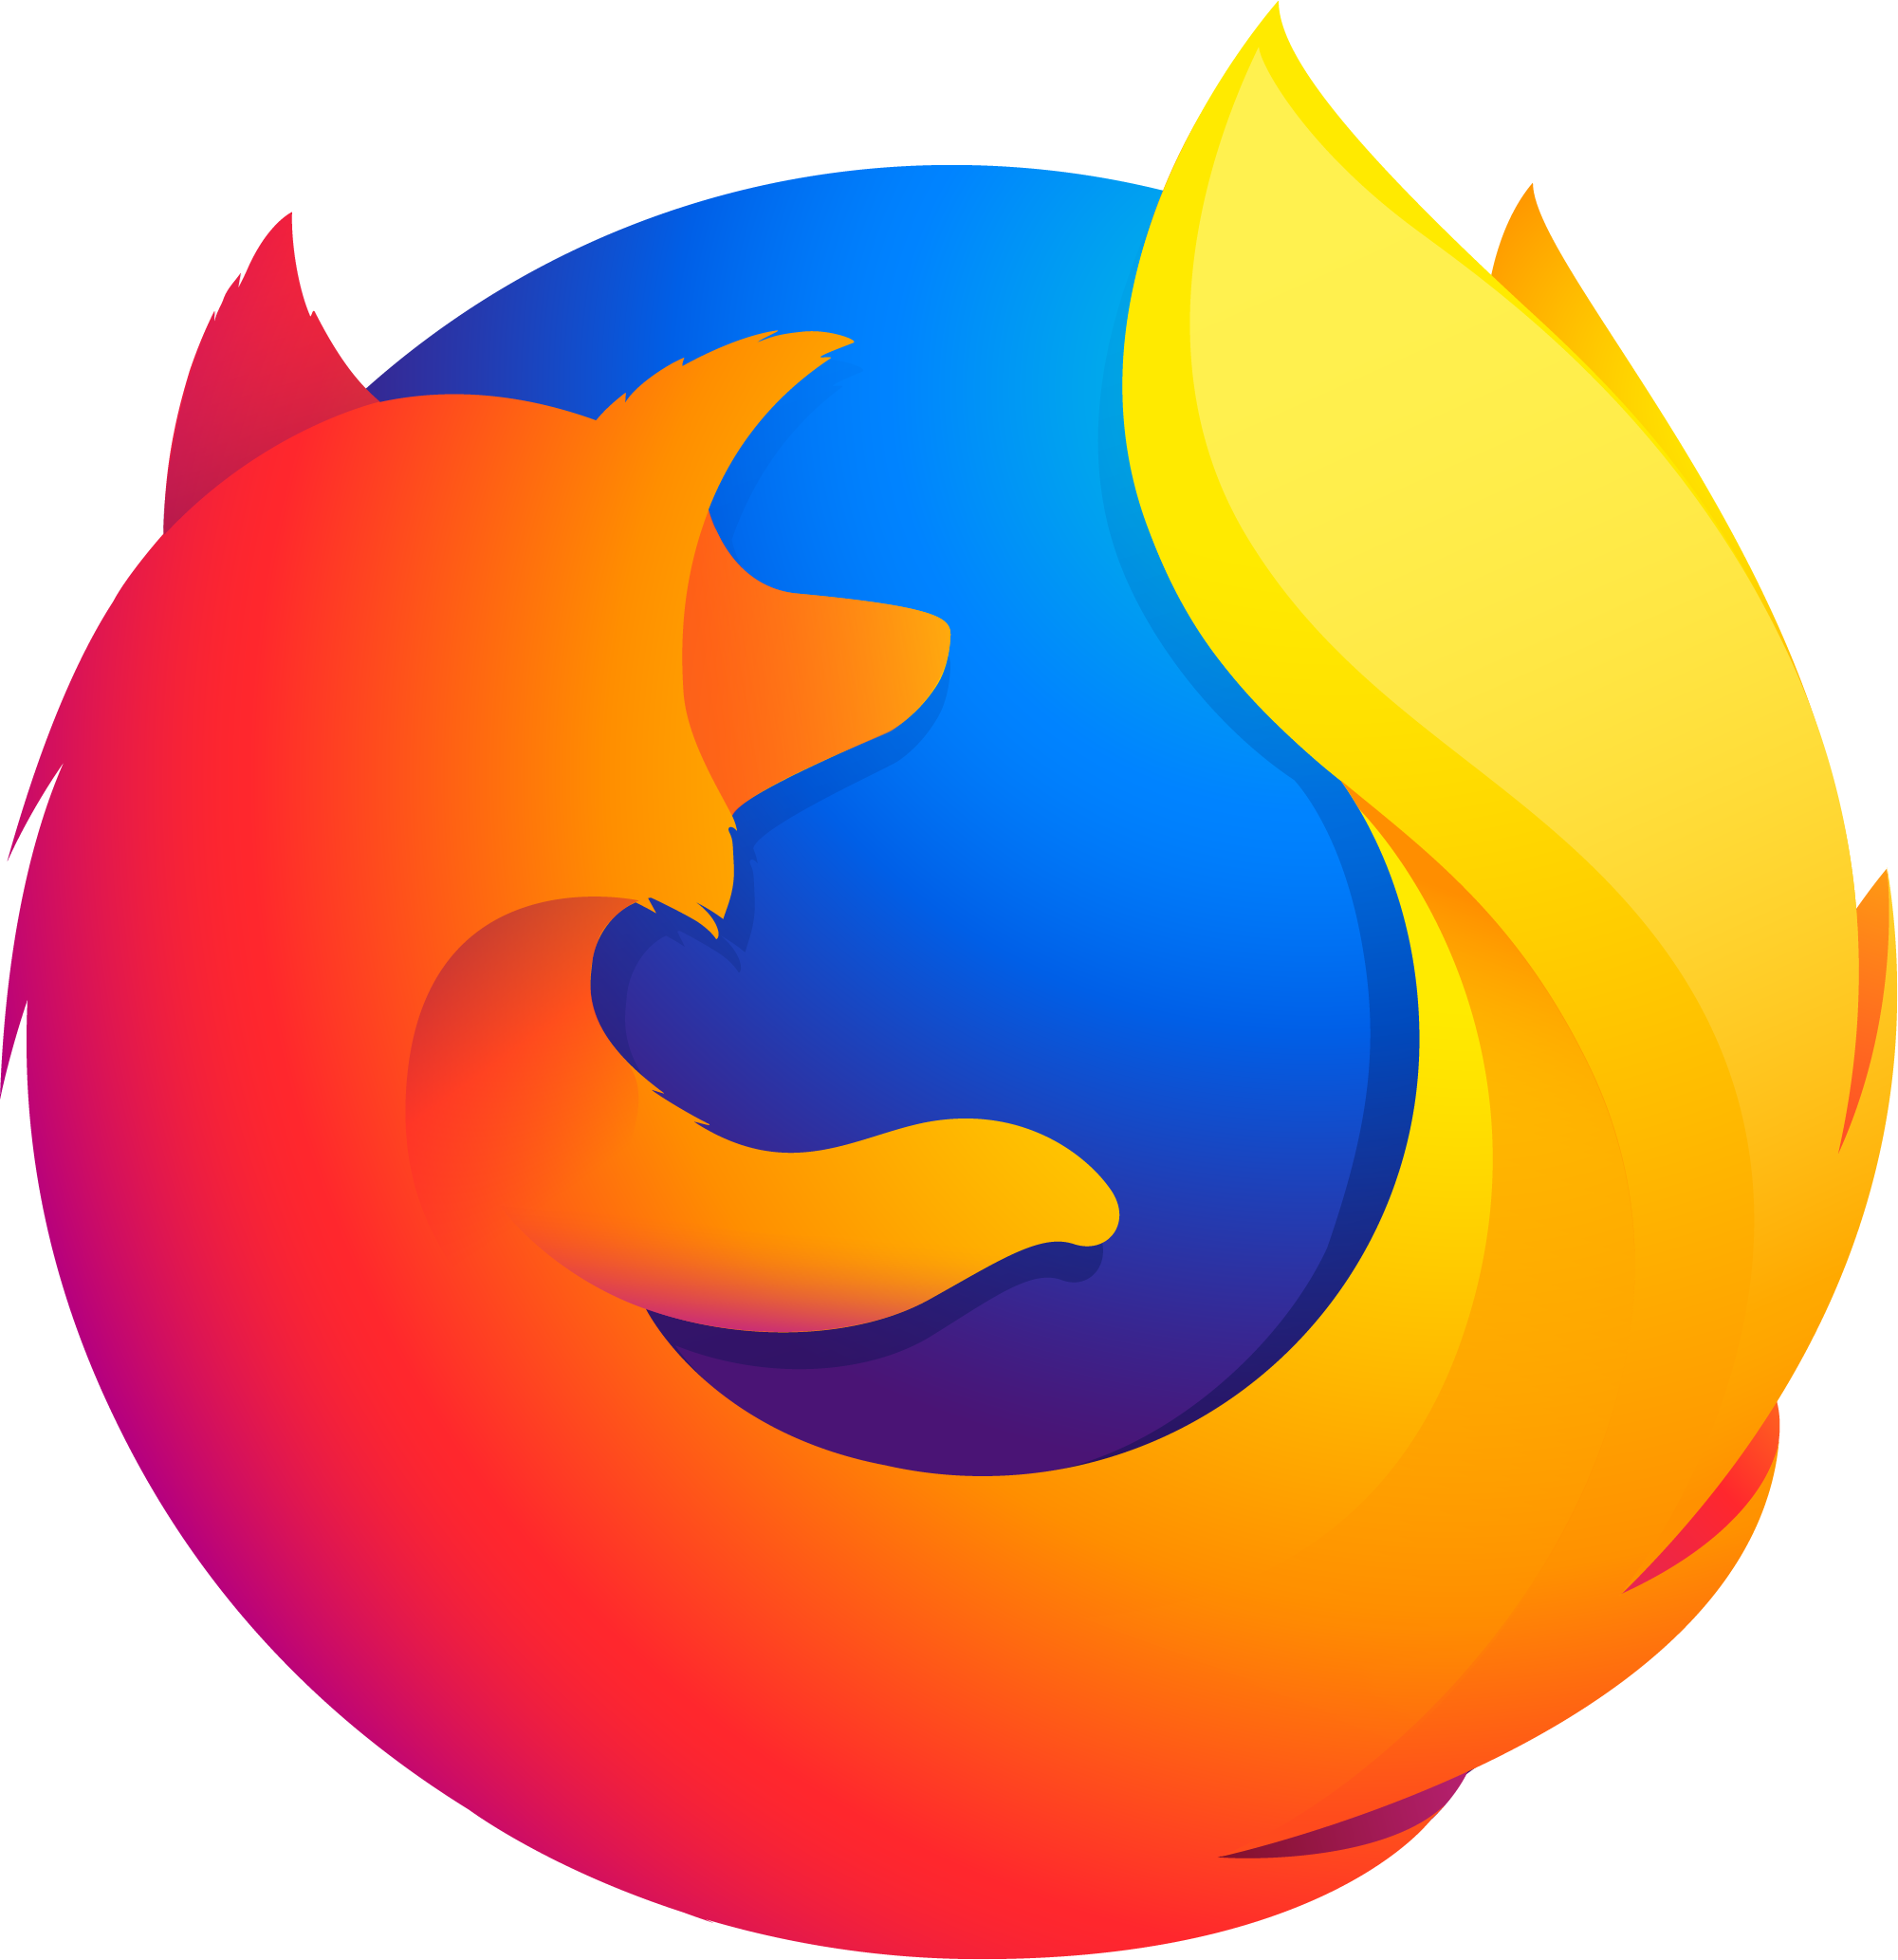 Firefox drawing logo